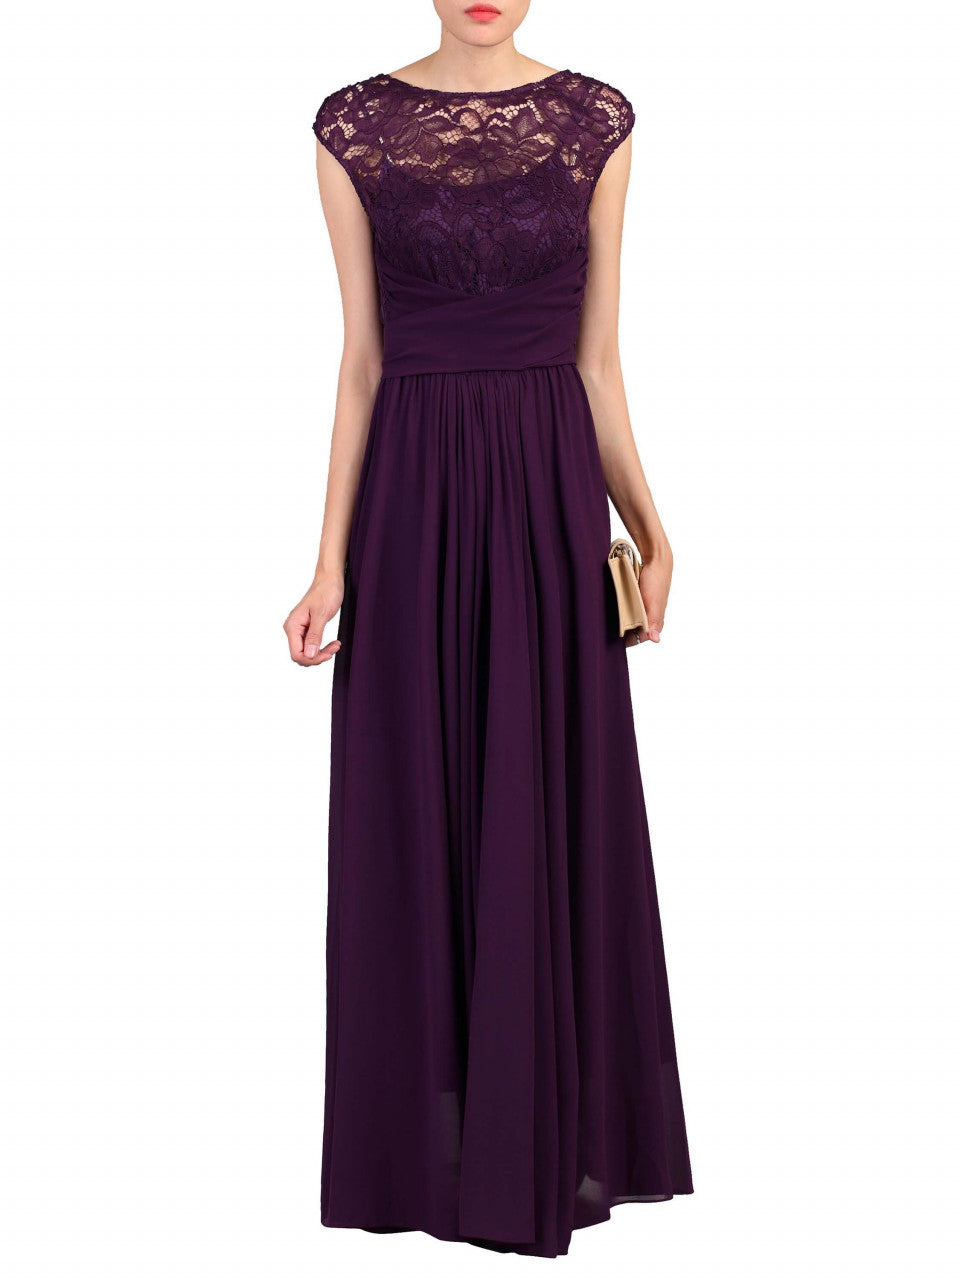 43725b863053 Load image into Gallery viewer, Jolie Moi Lace Bodice Pleated Maxi Dress,  Dark Purple ...